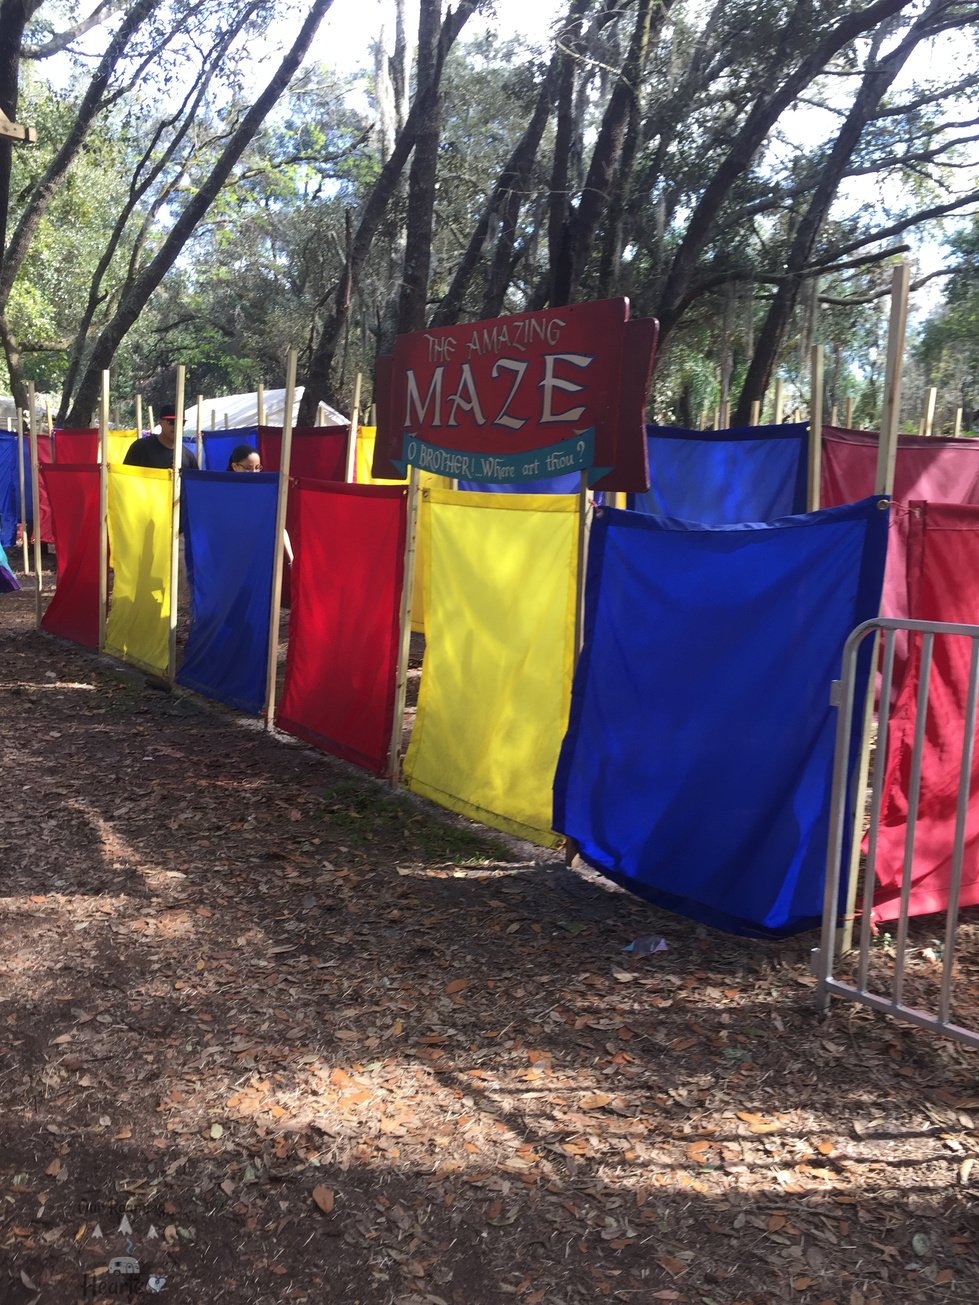 Ultimate Guide to the Bay Area Renaissance Festival Maze